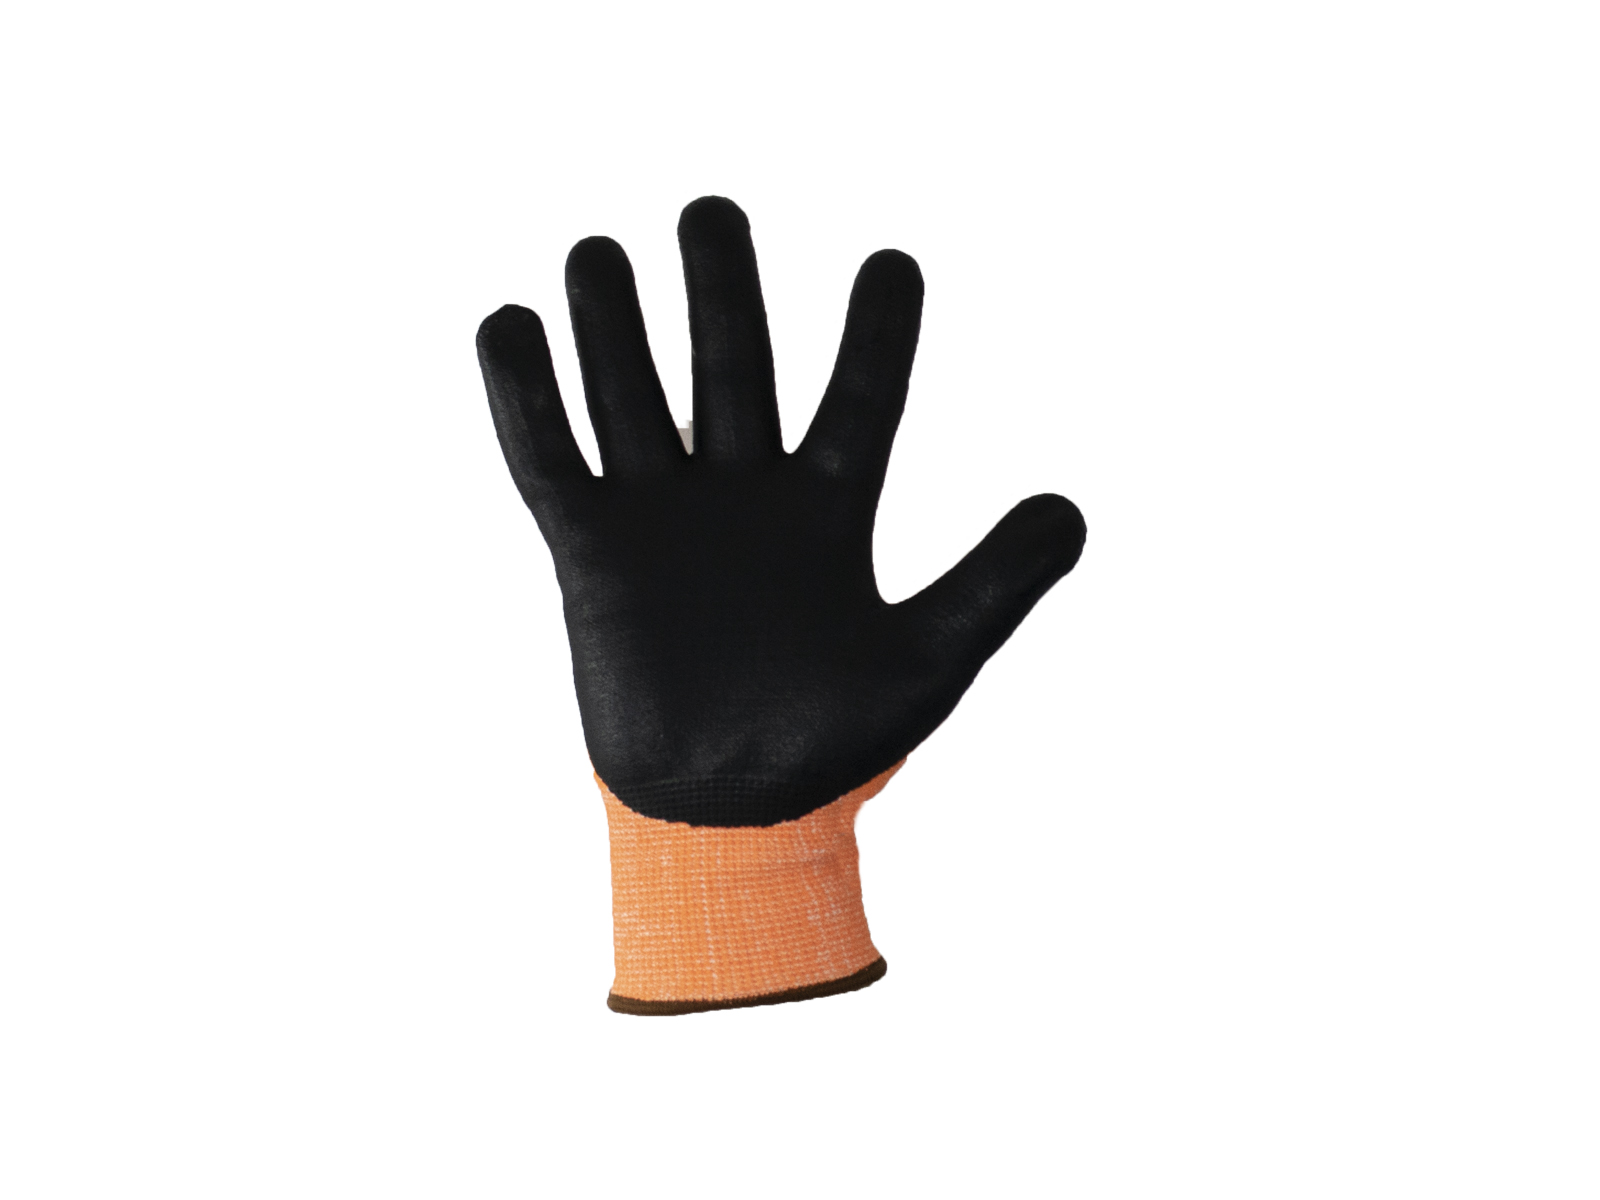 Samurai Lite Cut 5 Safety Glove w/ Touch Screen Technology - Multipack -2